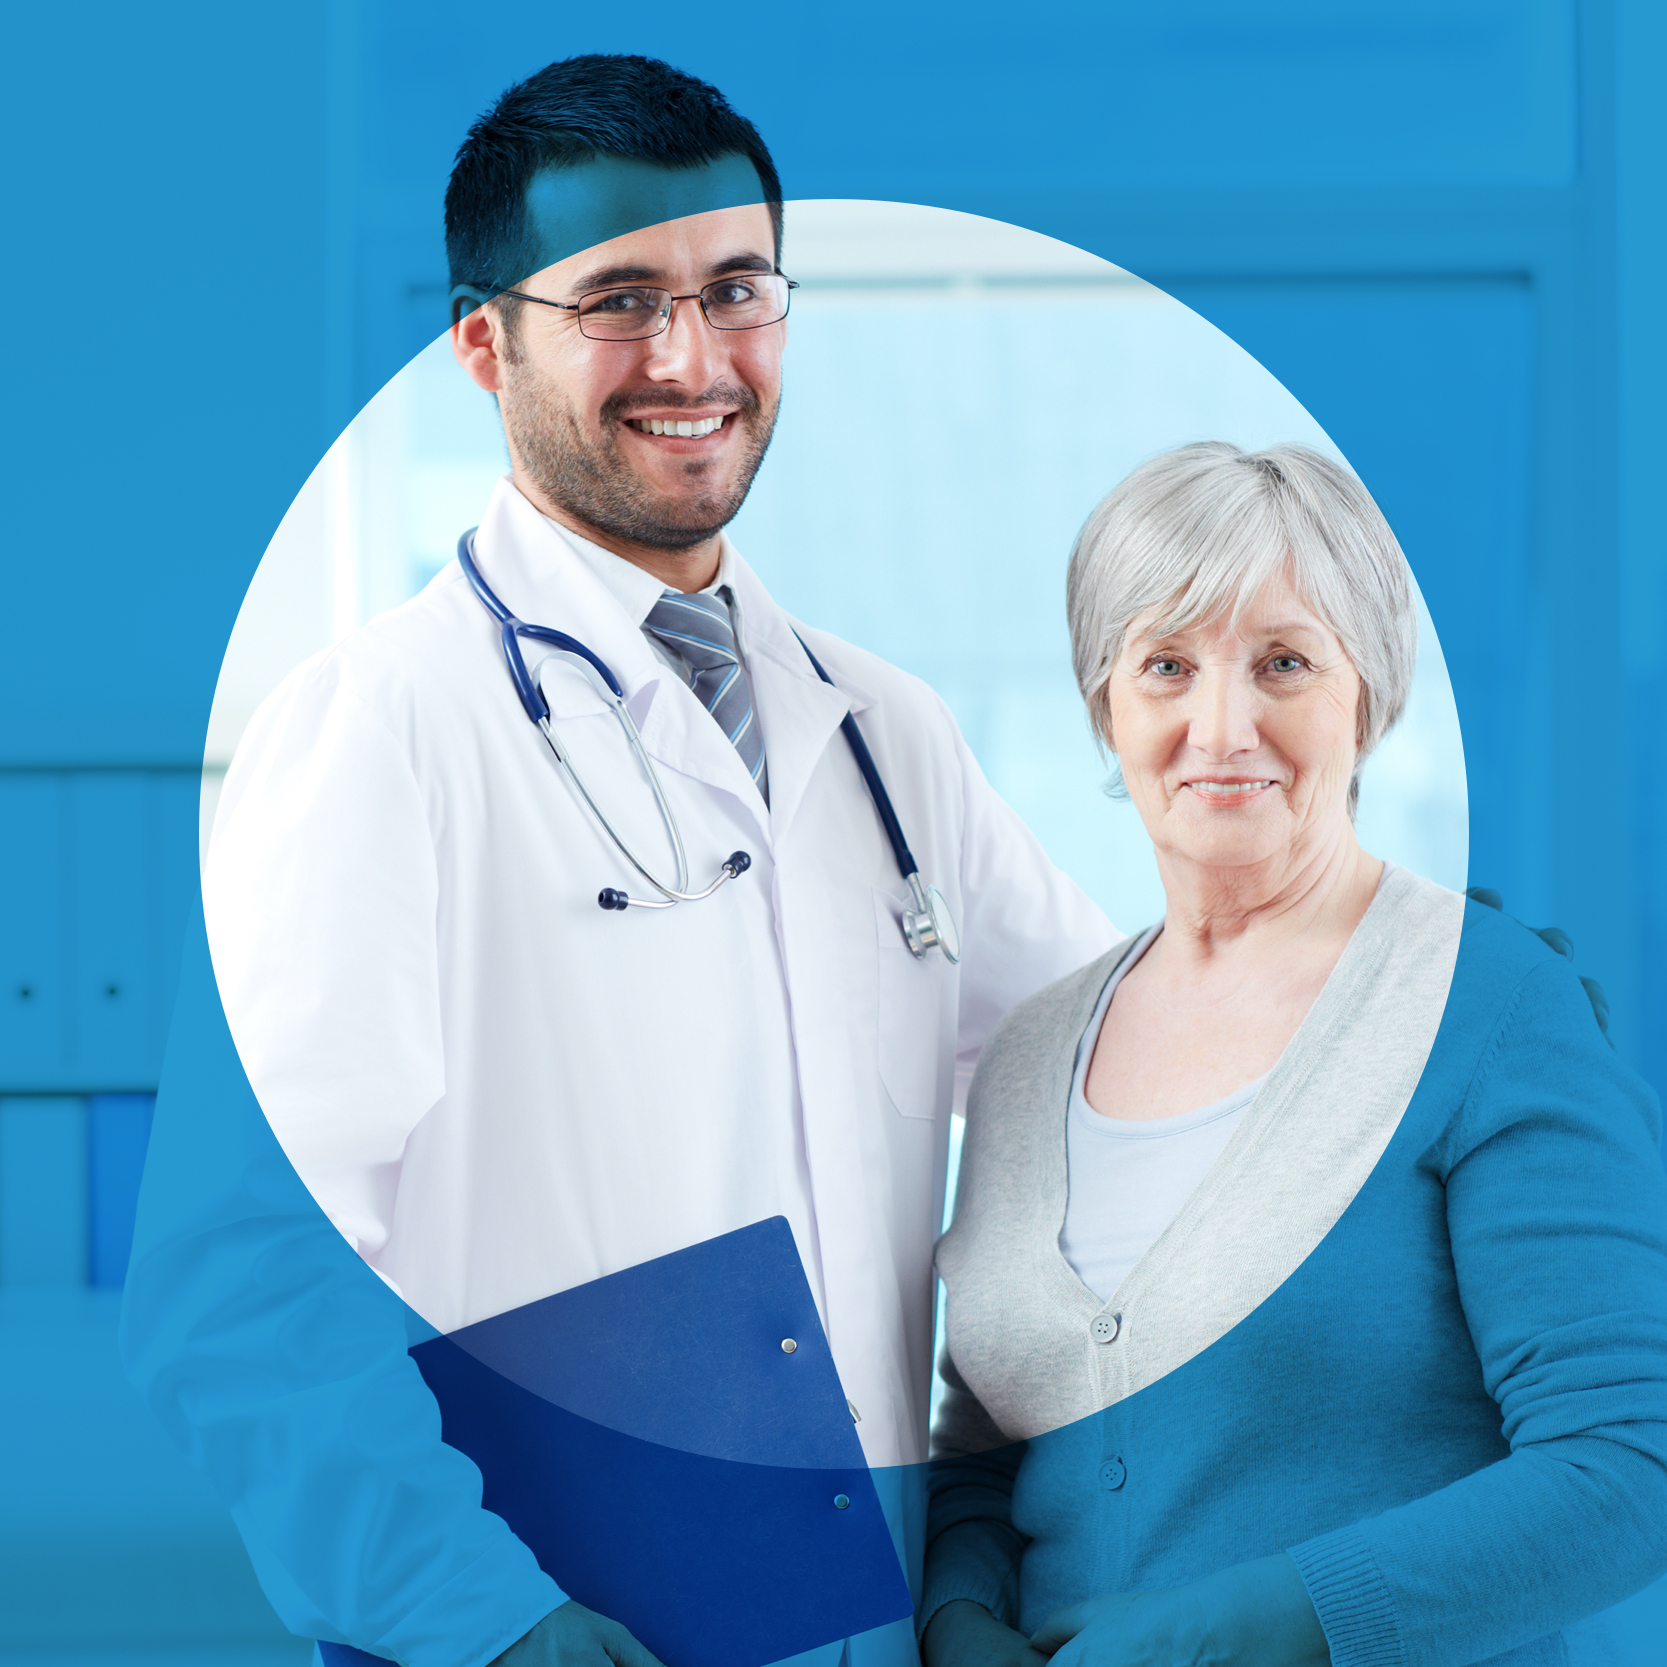 Doctor standing with patient